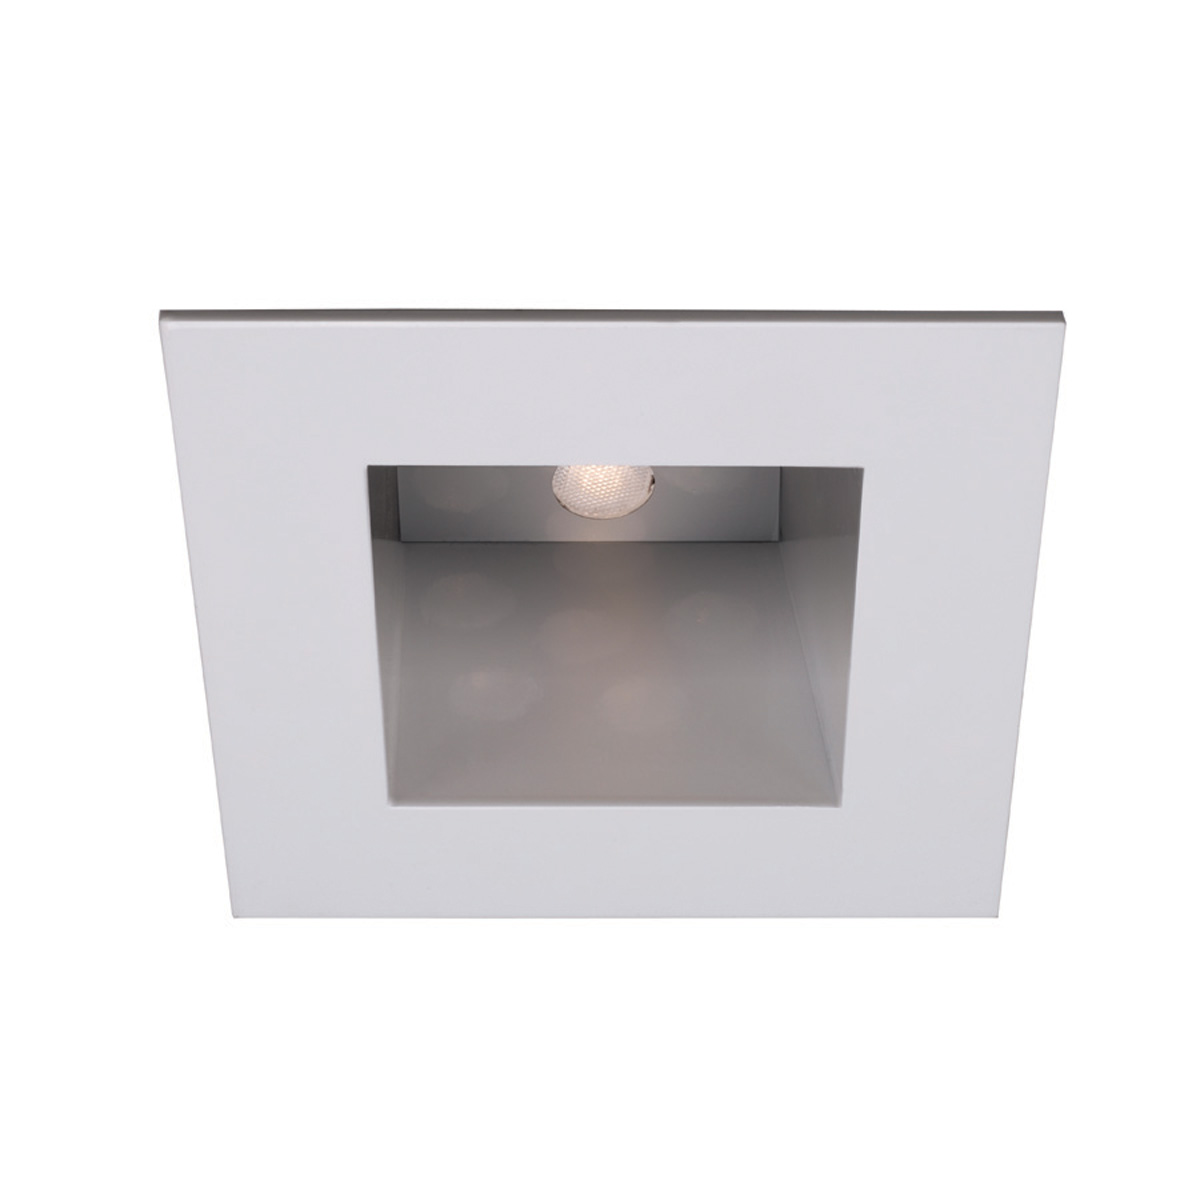 Wac Lighting Hr Led451 Ledme 4 Inch Led Downlight Square